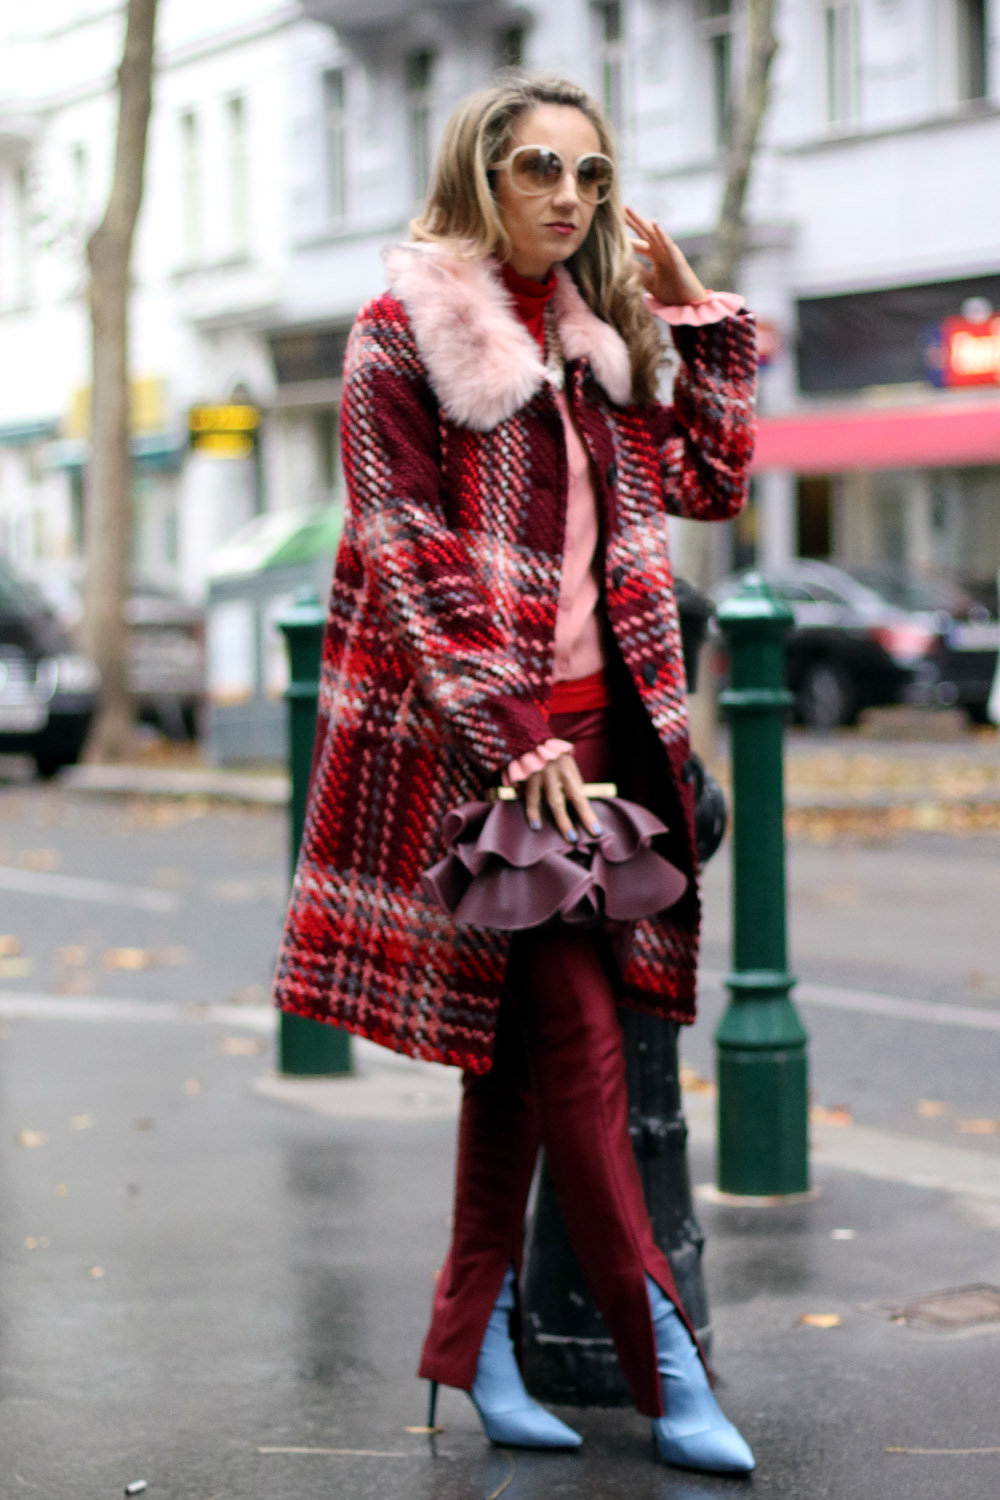 colourclub-fashionblog-wenz-coat-check-pattern-zara-bag-mango-boots